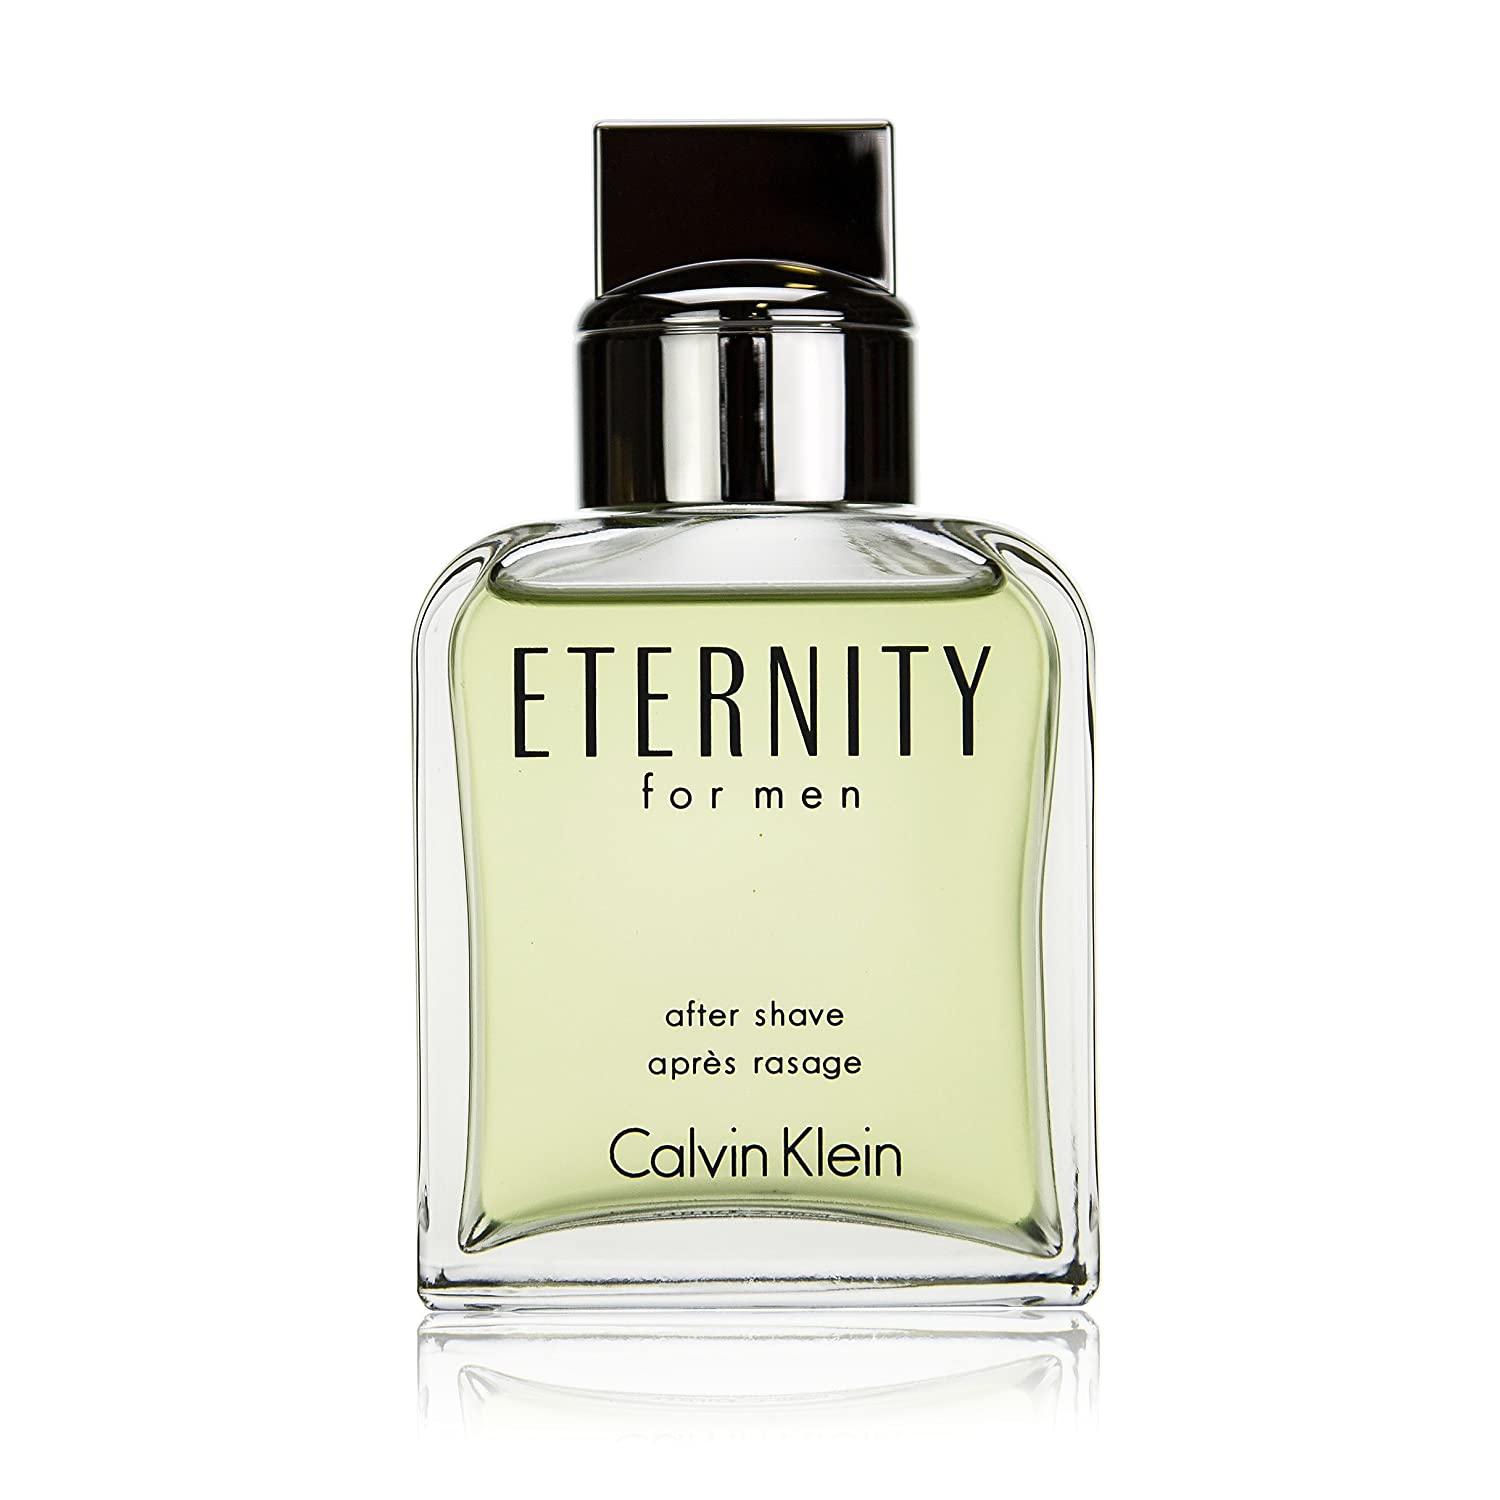 ETERNITY FOR MEN A/S 100 ML Calvin Klein 60553